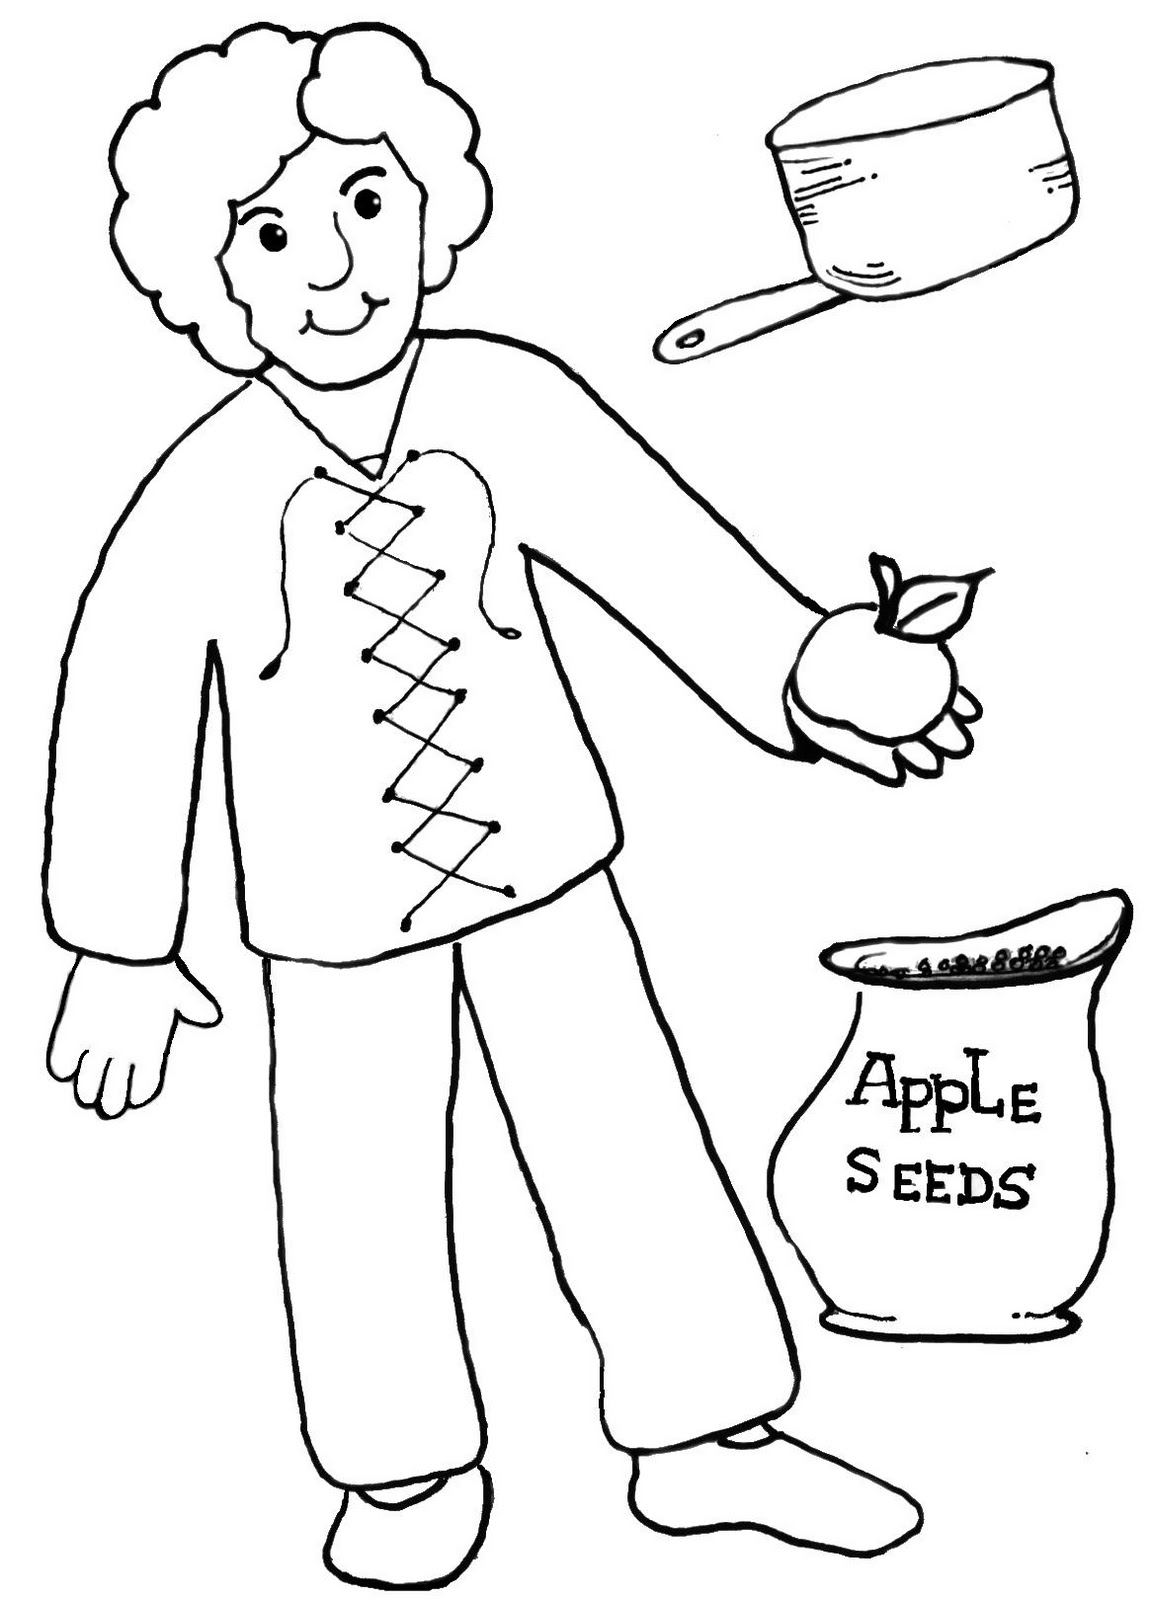 Clip Art Of Johnny Appleseed